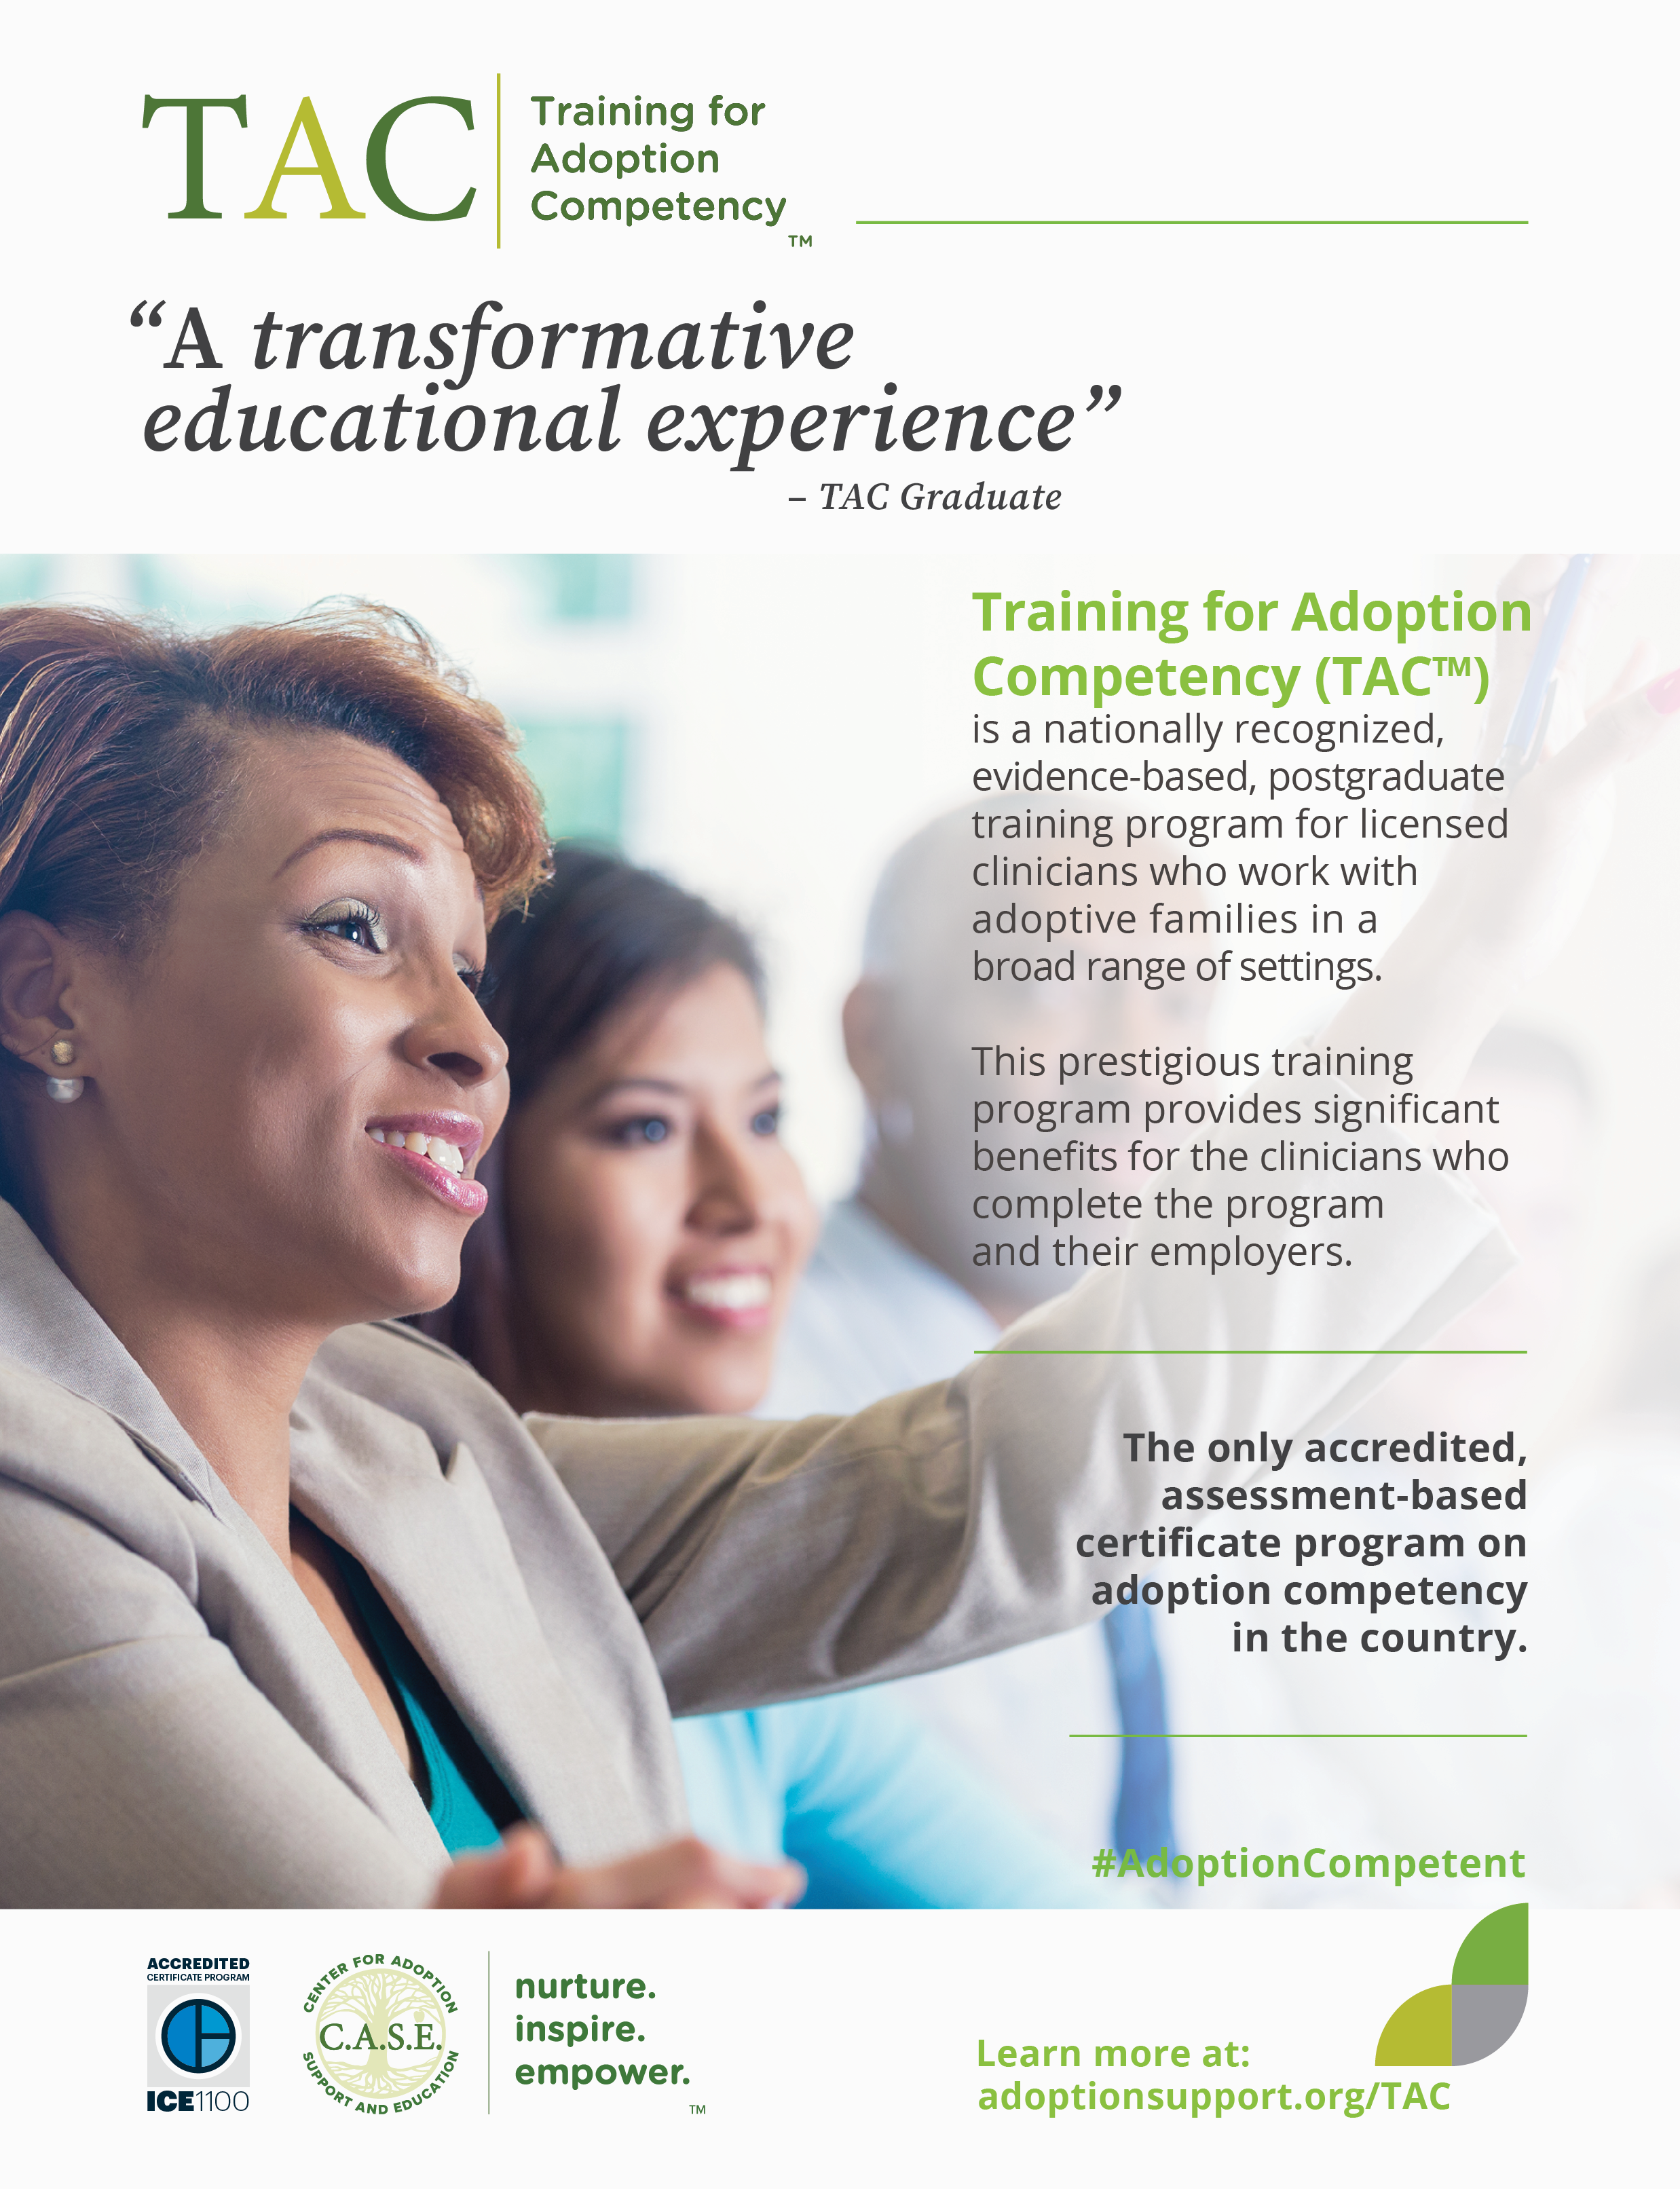 TAC A transformative educational experience